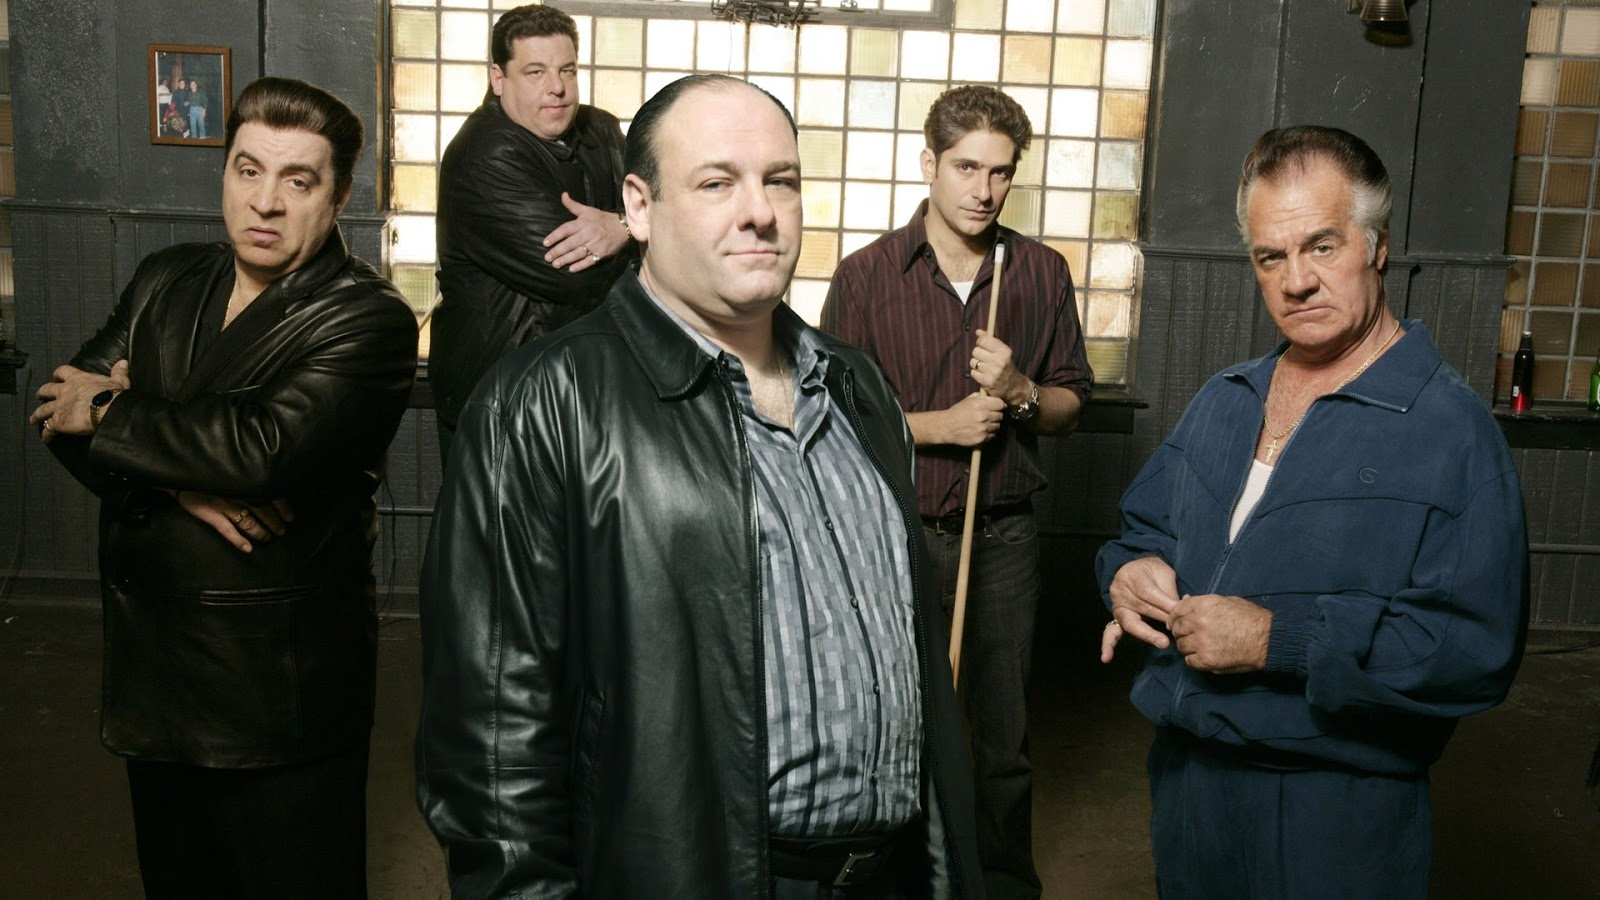 What's your favorite quote from the HBO hit series The Sopranos?